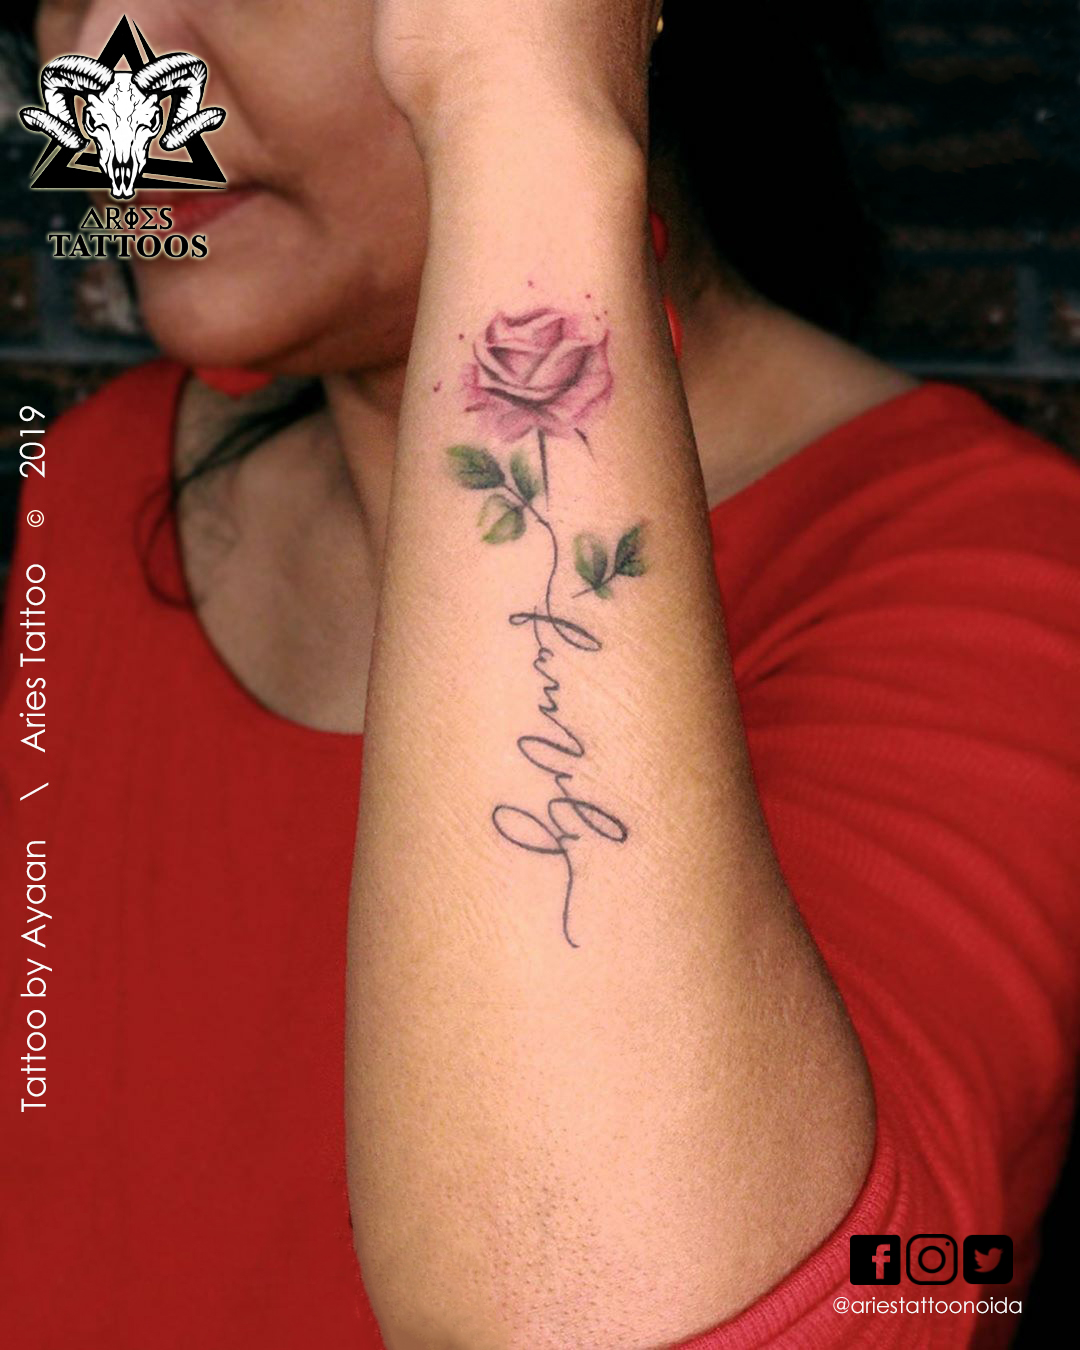 rose tattoo by ayaan | |Aries Tattoo Noida | Tattoo Shop and Studio In Noida